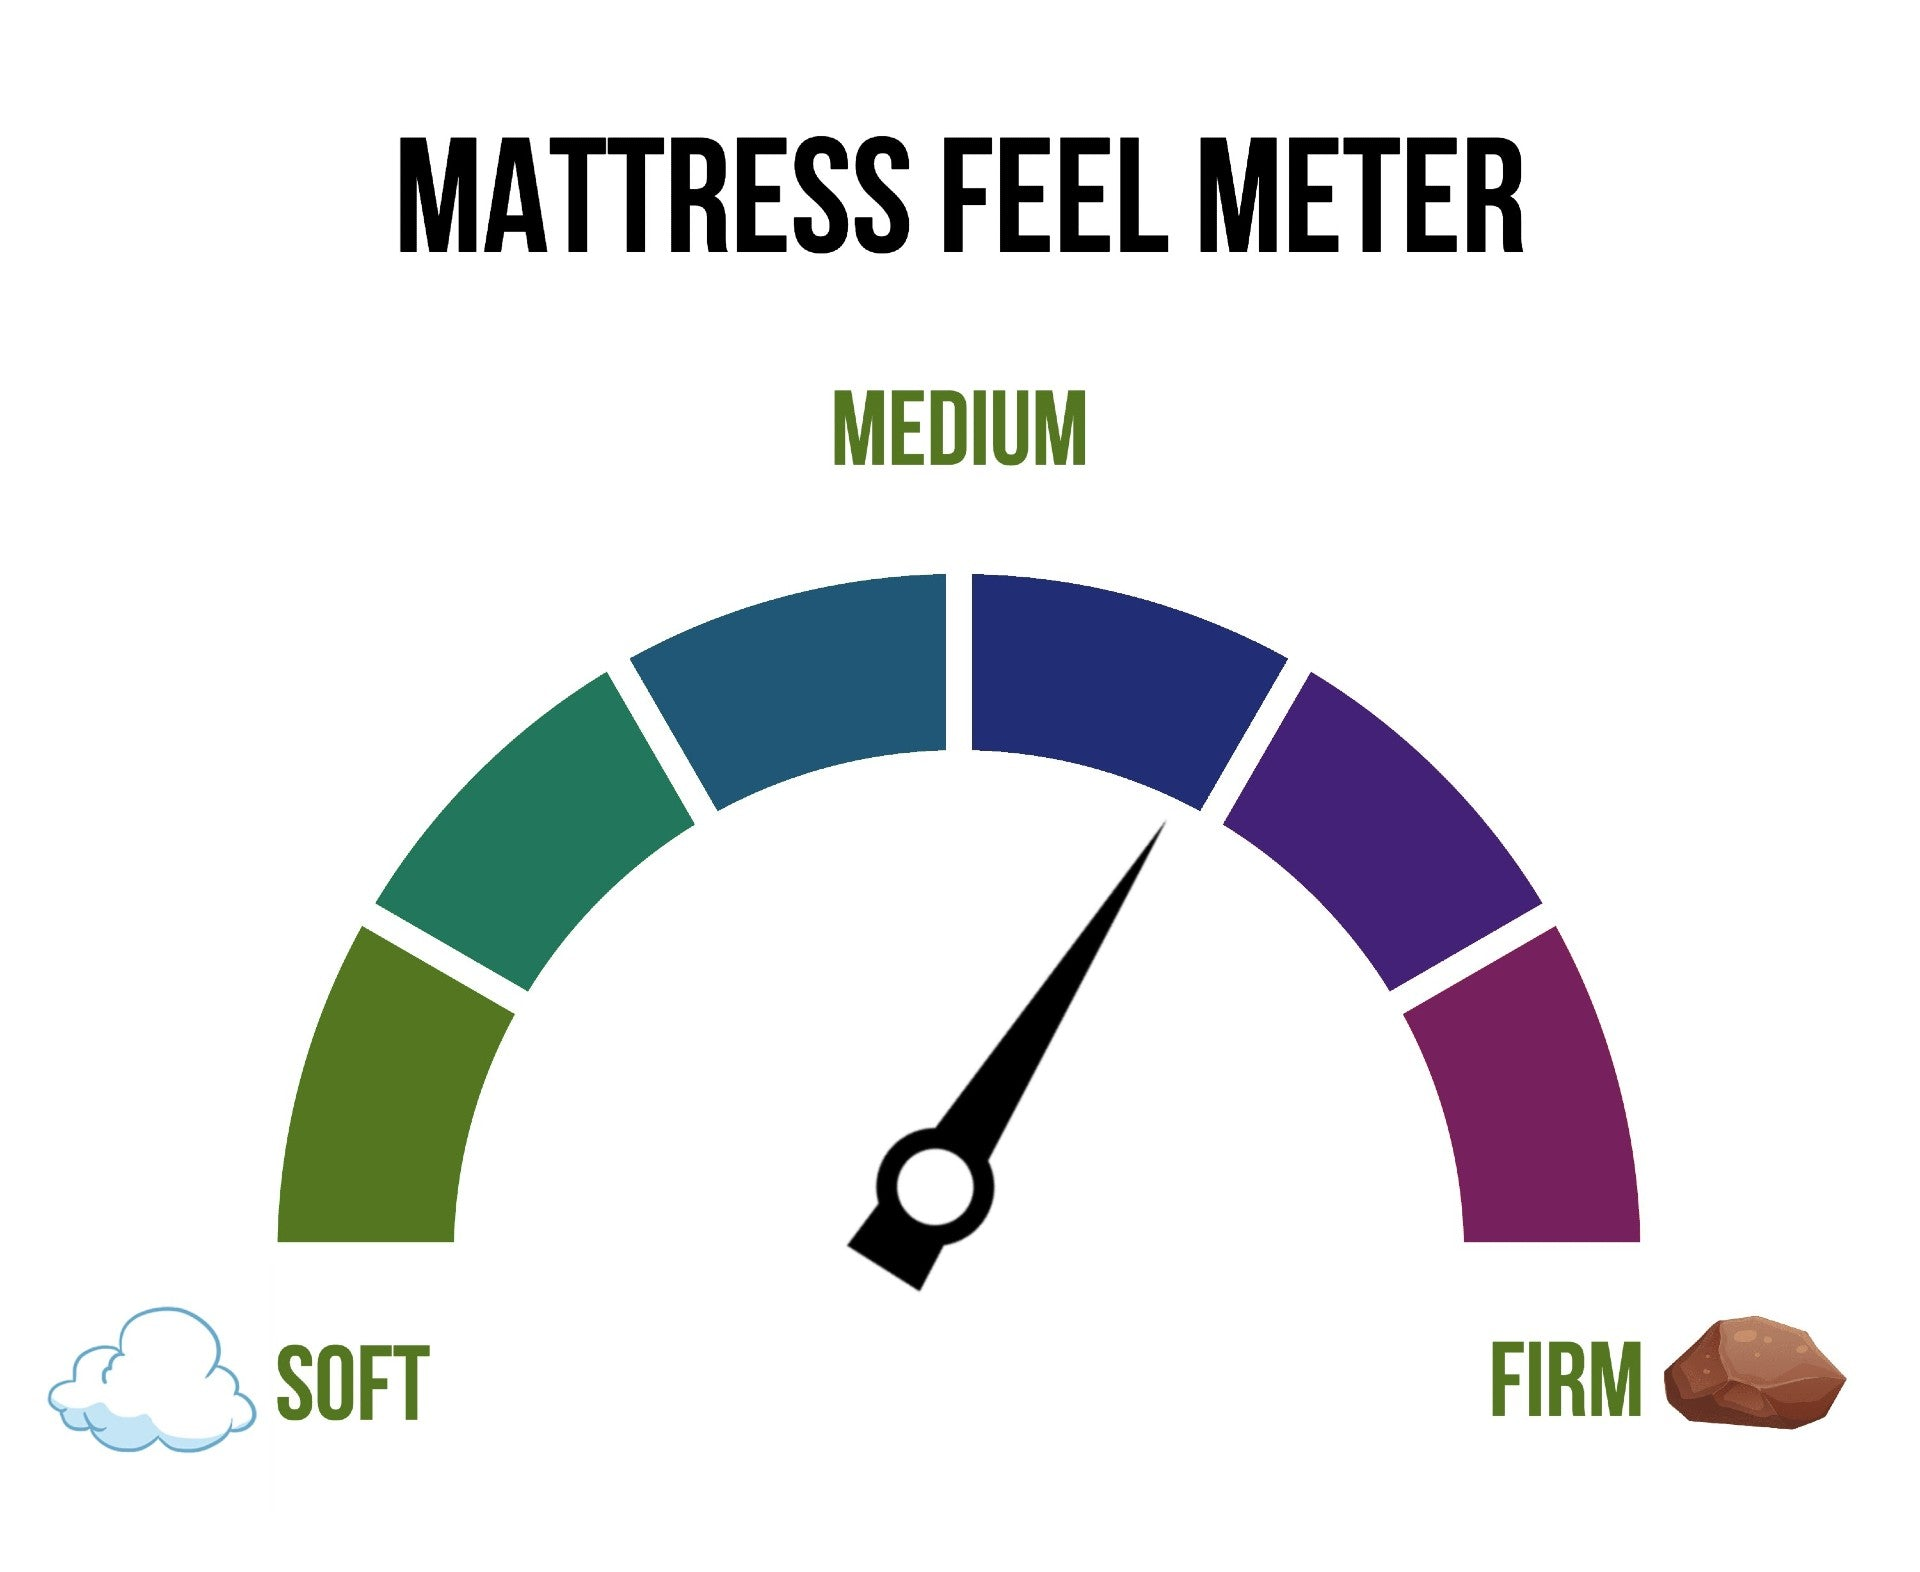 Measured by us to let you know the firmness of the mattress.